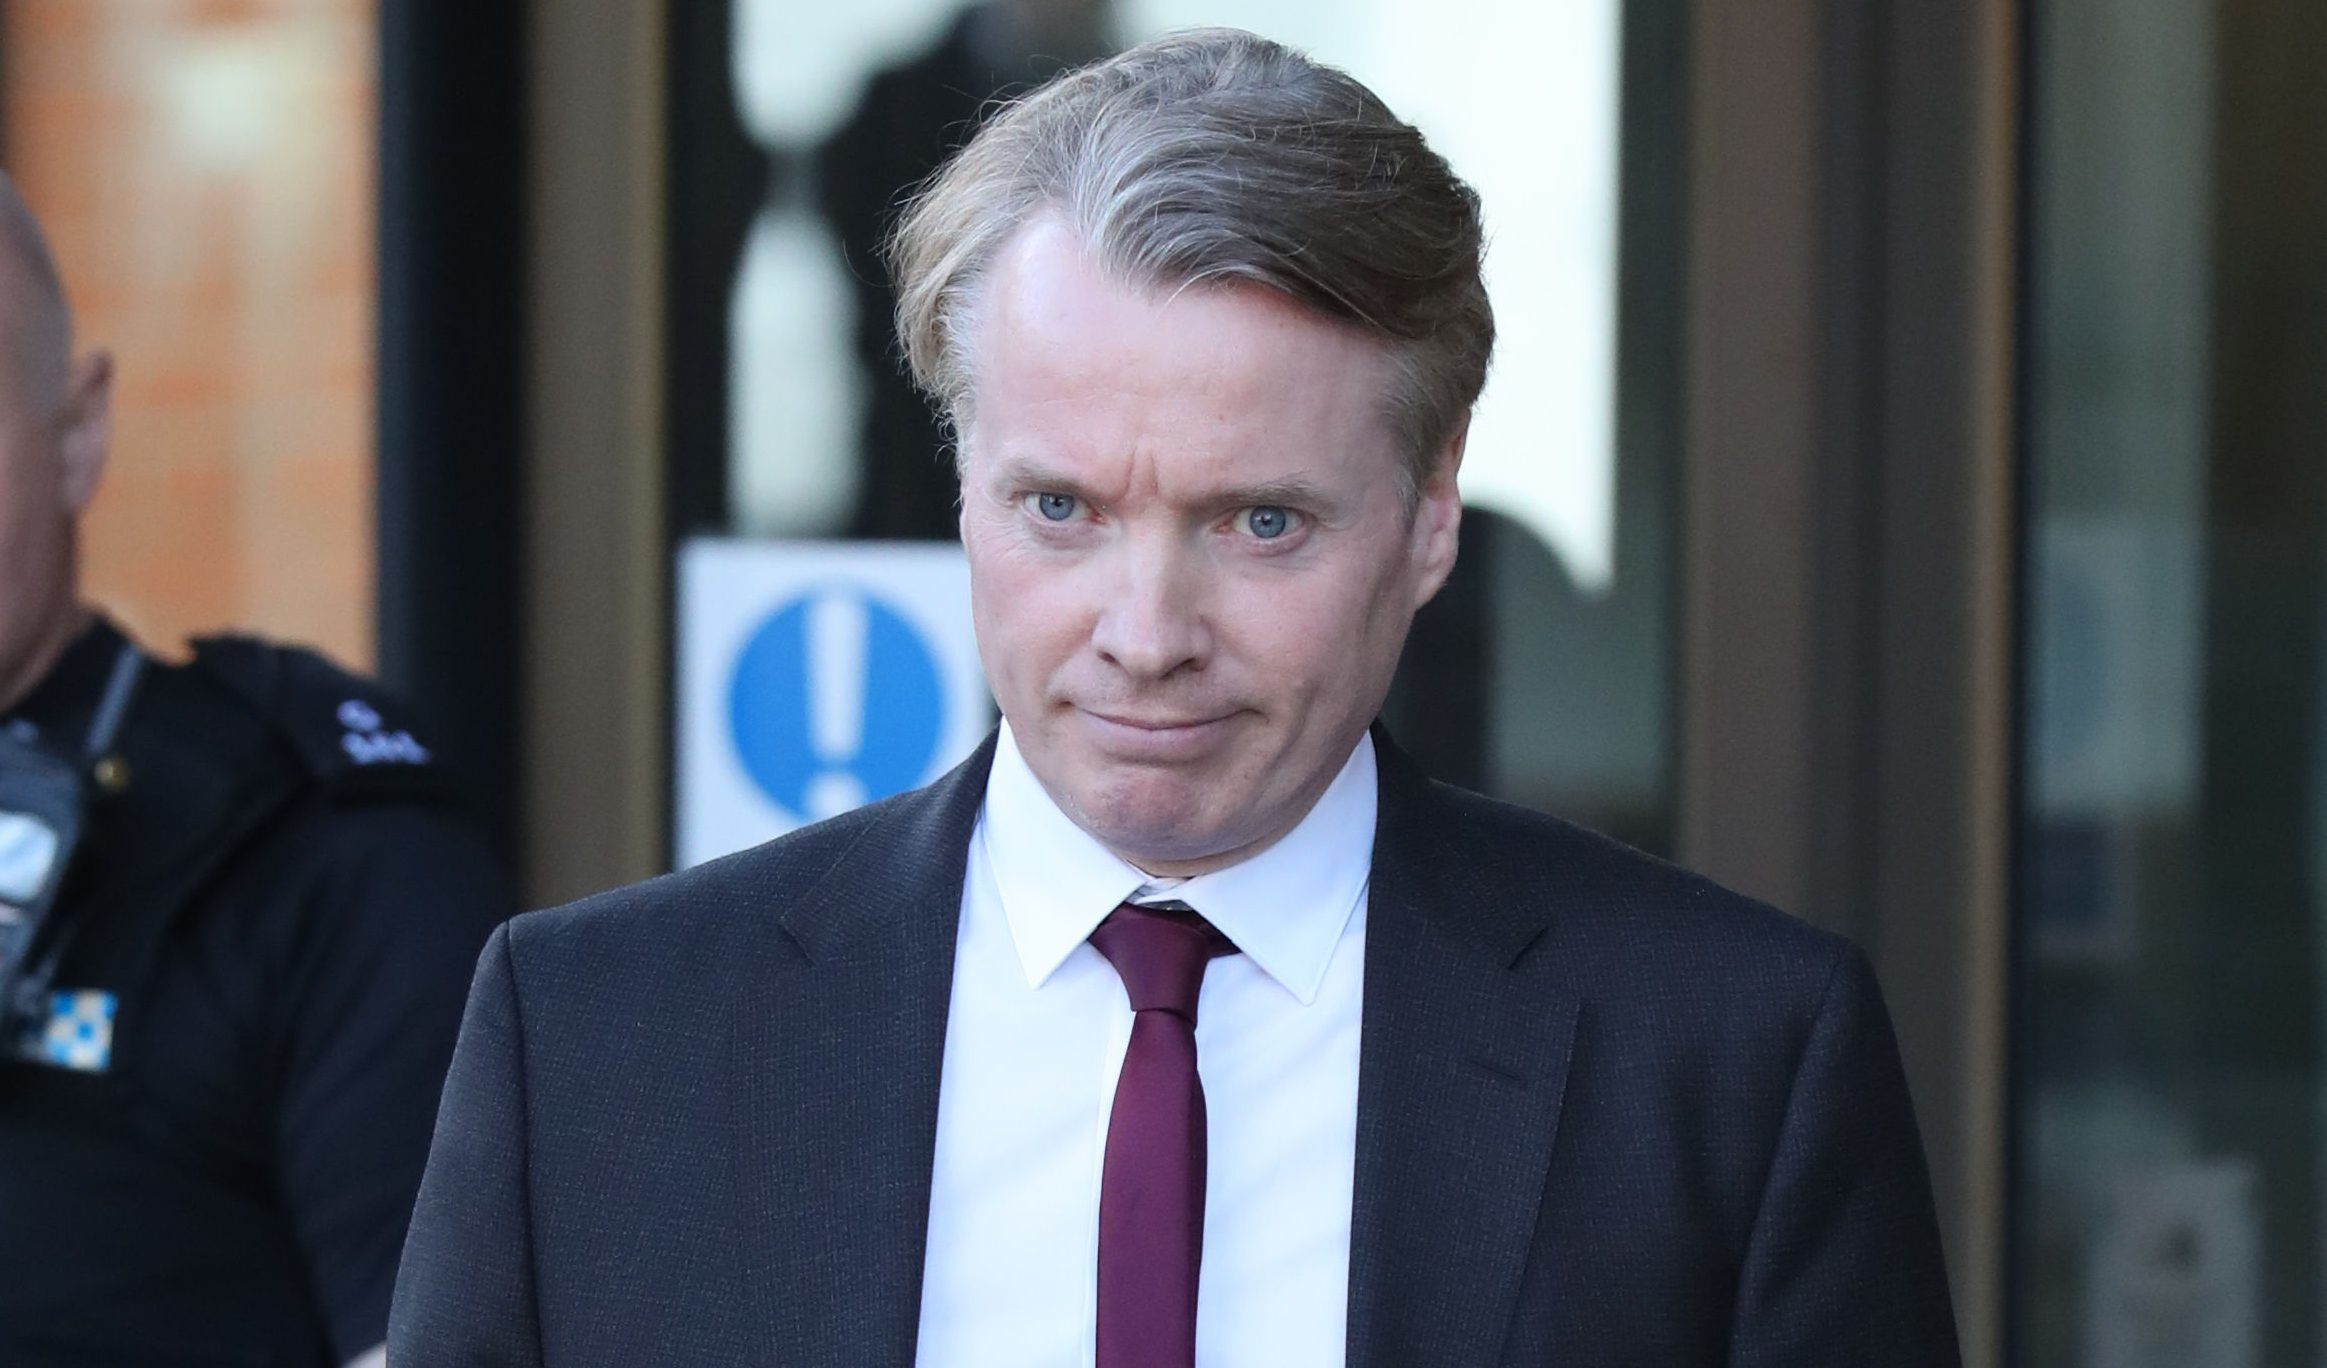 Former Rangers owner Craig Whyte outside the High Court in Glasgow. (Andrew Milligan/PA Wire)